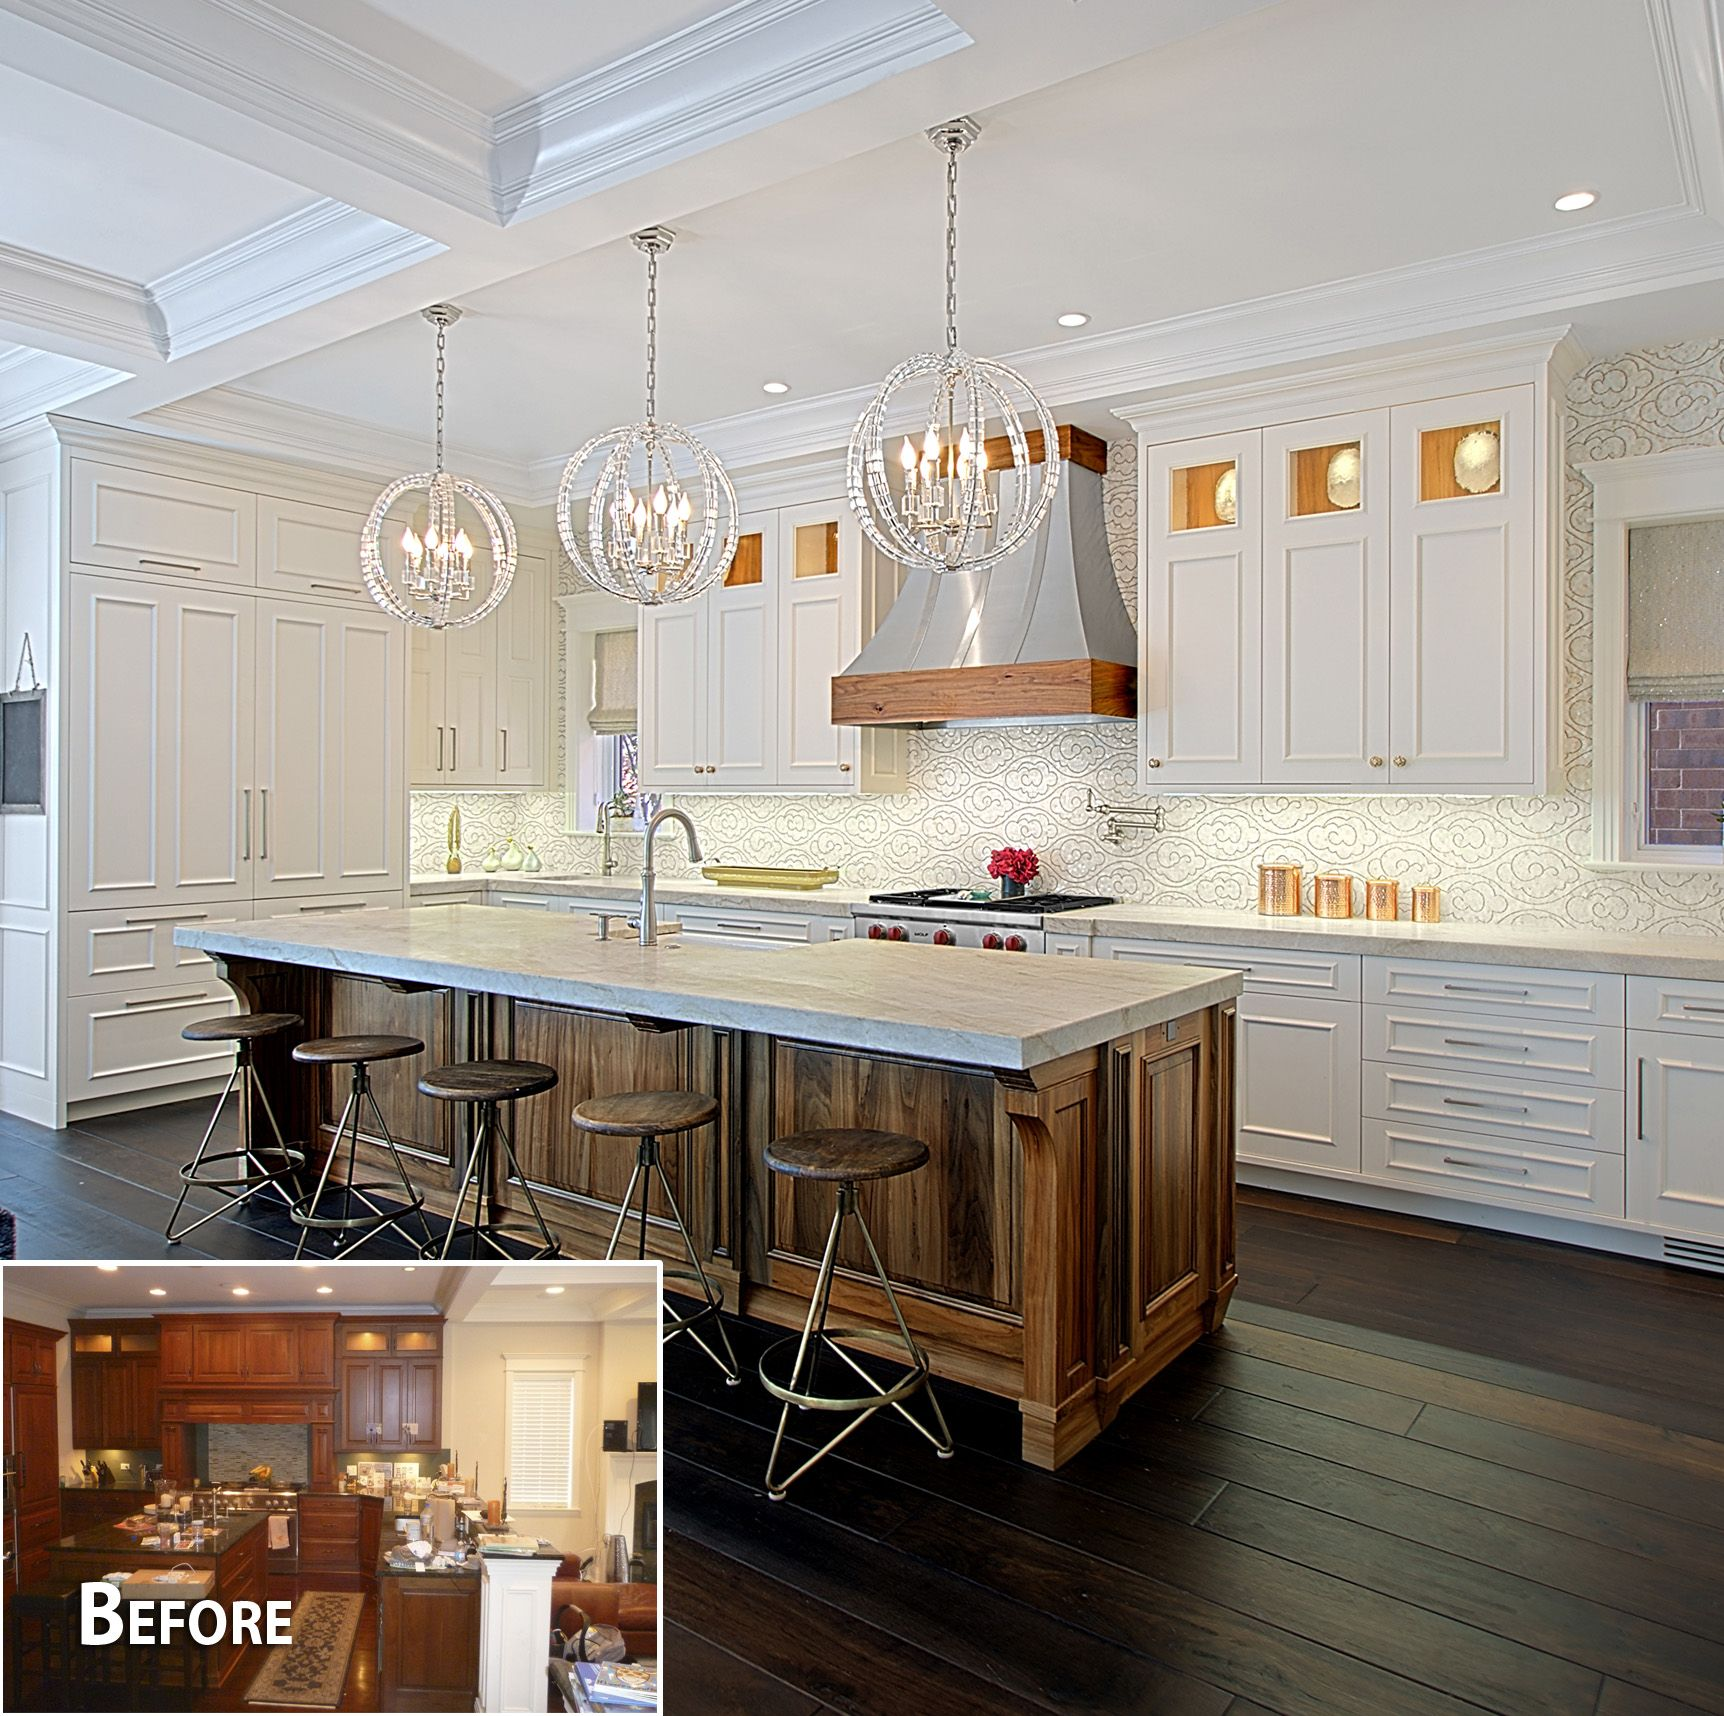 Modern Chicago Lakeview Kitchen Remodel With Mixed Woods Custom Made Cabinetry Designed And Built I Custom Kitchen Remodel Kitchen Design Transitional Kitchen